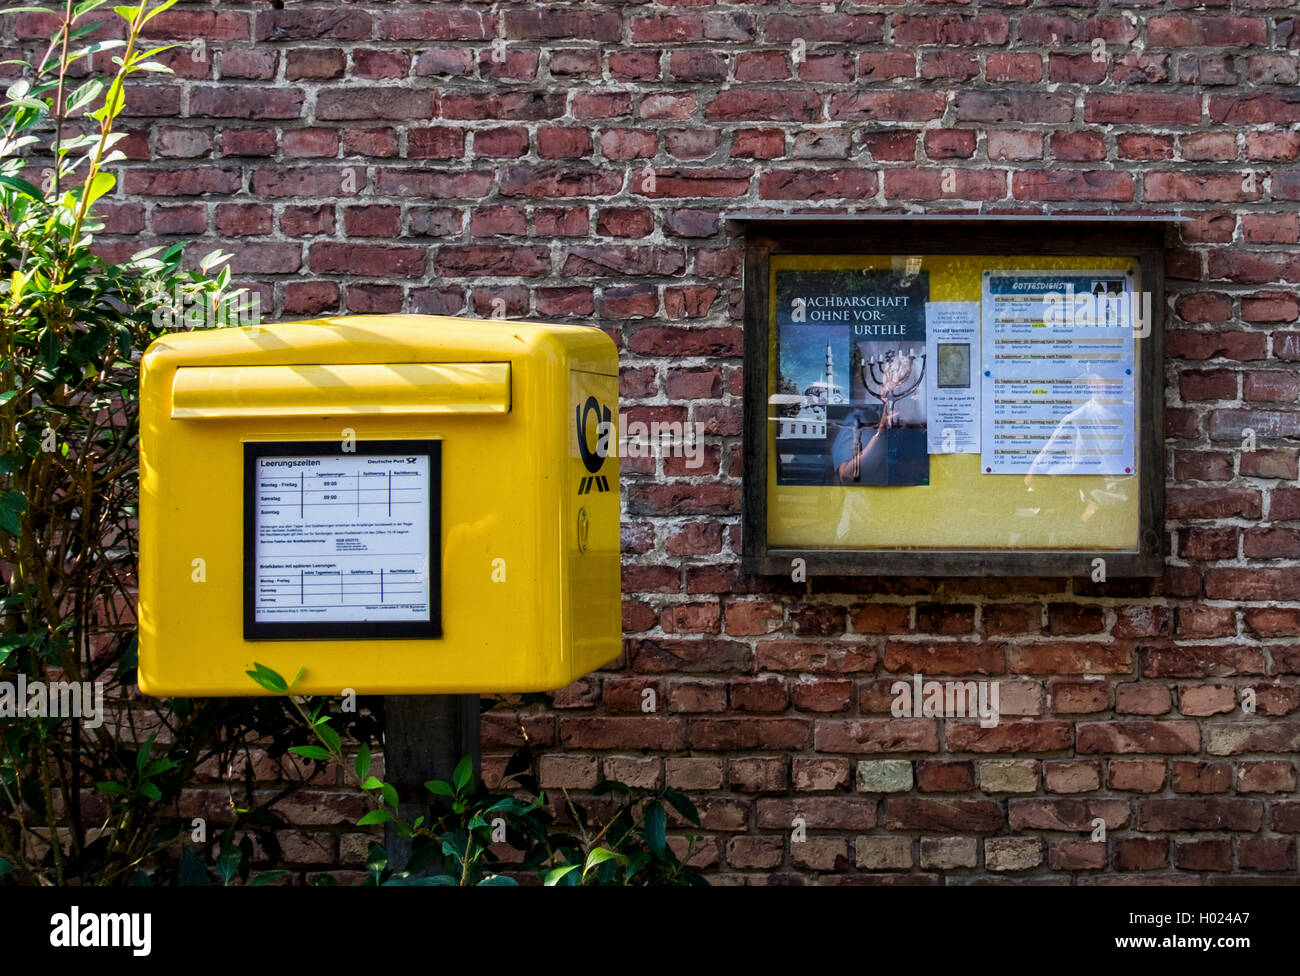 Rural yellow postbox and noticeboard, Germany - Stock Image